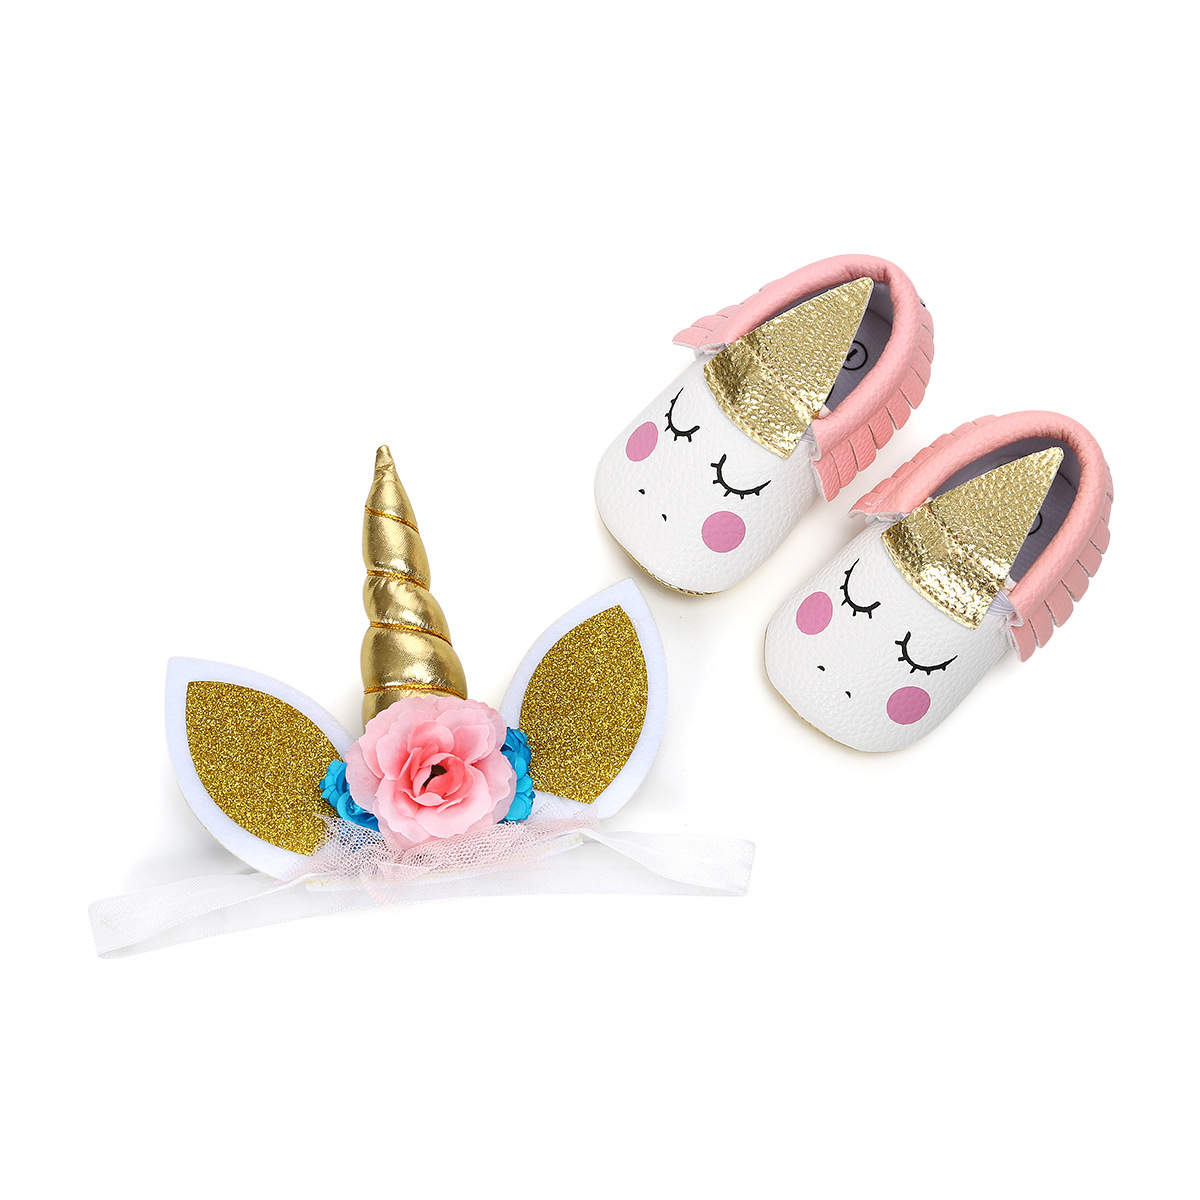 ROMIRUS Fashion Tassel Baby Moccasins Headwear Gift Set New Born Baby Shoes Baby Hair Accessories First Walkers